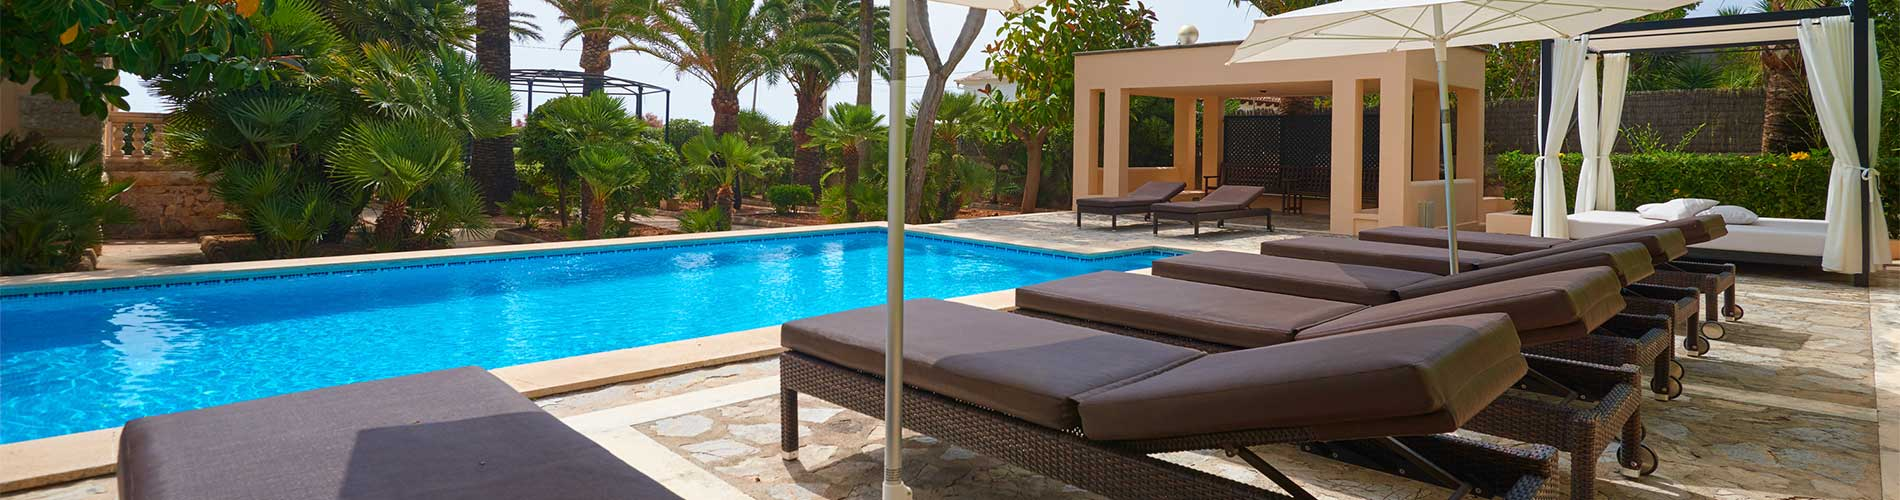 Holidays Villas Holiday Rentals In Majorca Villa Holidays Protur Villas